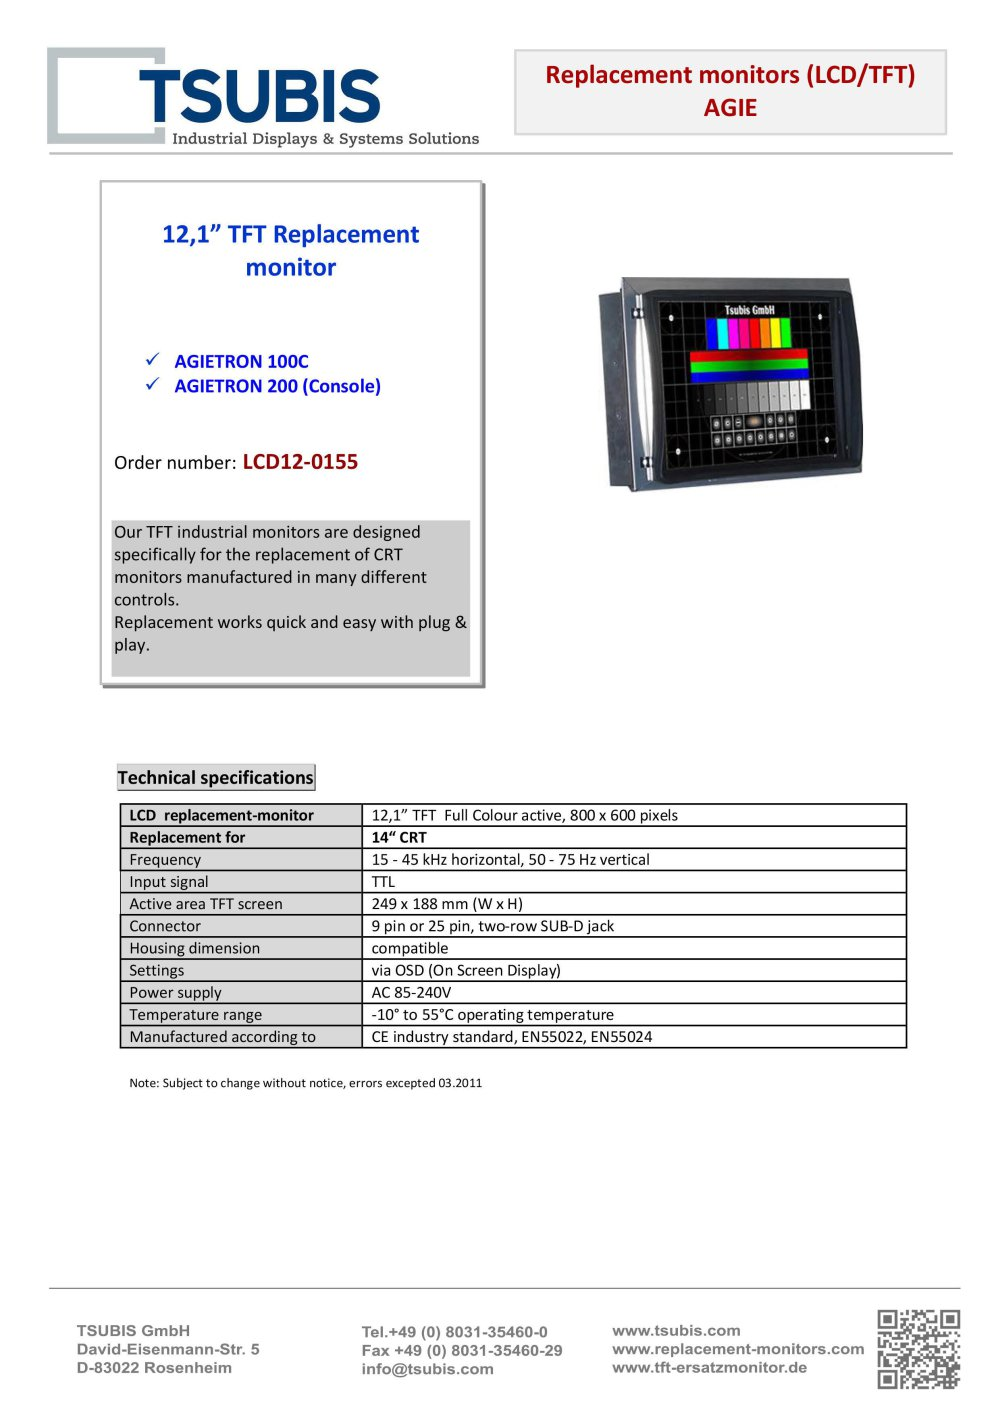 Replacement Monitor For Agietron 100 And 200 Tsubis Pdf Power Supply Ttl 1 Pages